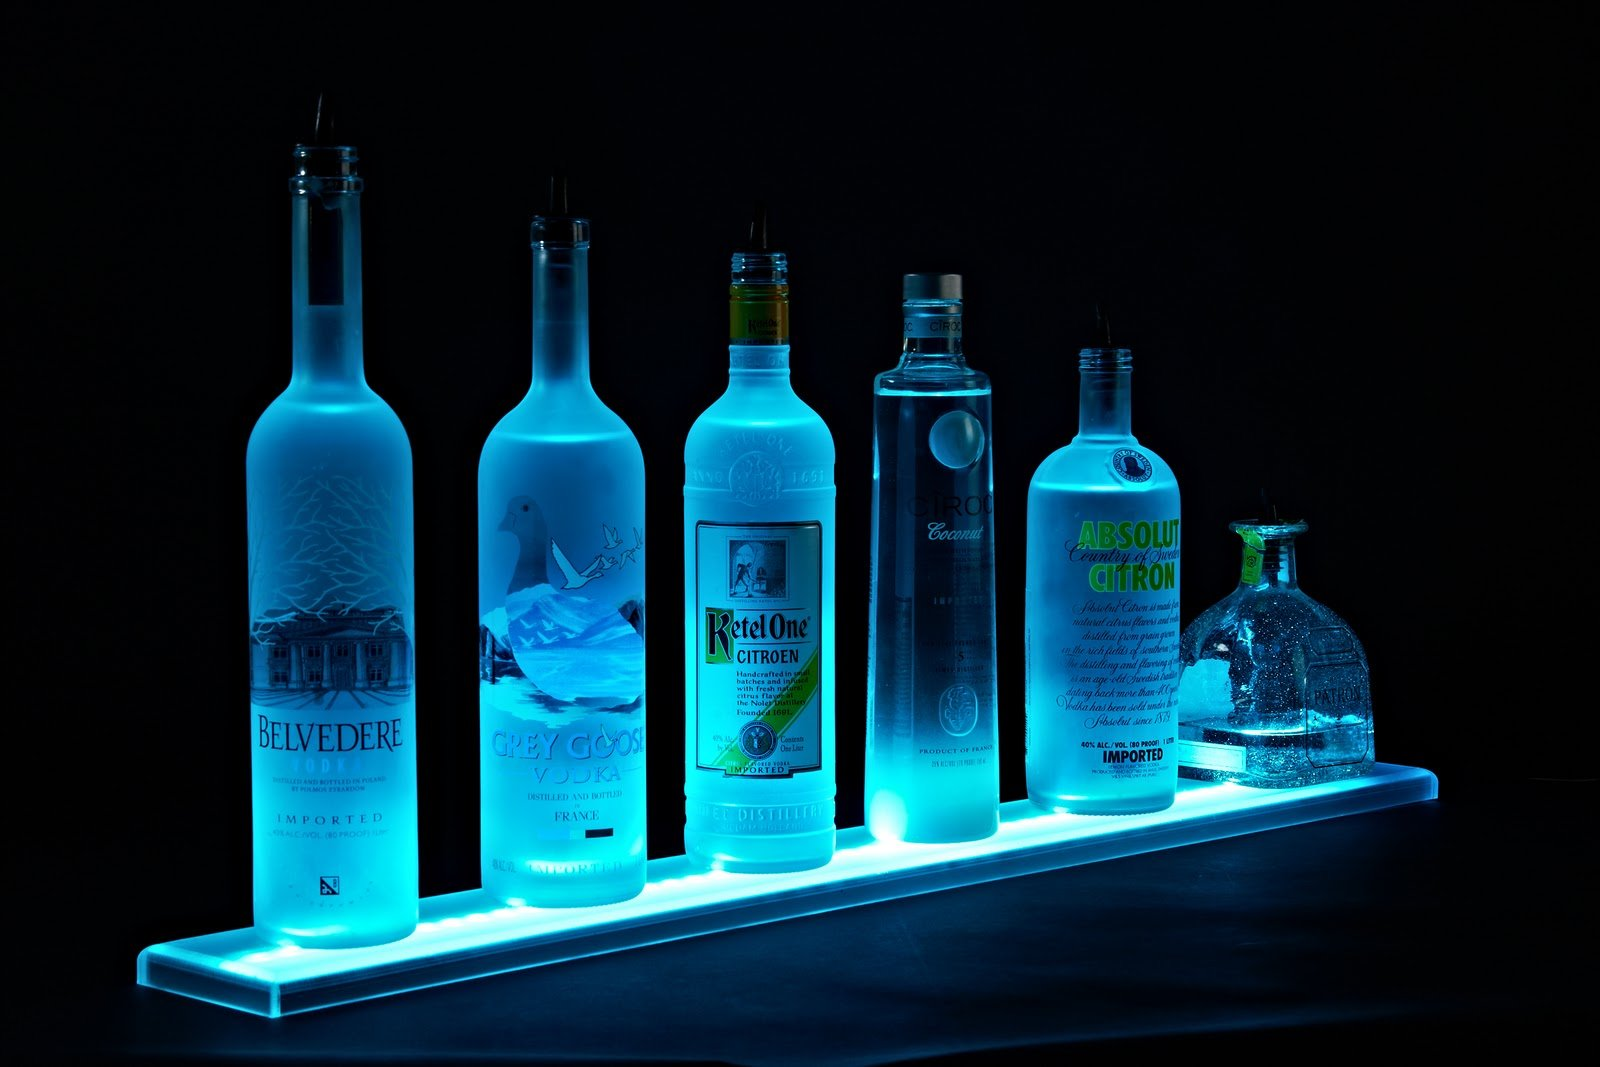 LED Liquor Shelf and Bottle Display (6 ft length) - Programmable Shelving Includes Wireless Remote, Wall Mounts, and Power Supply